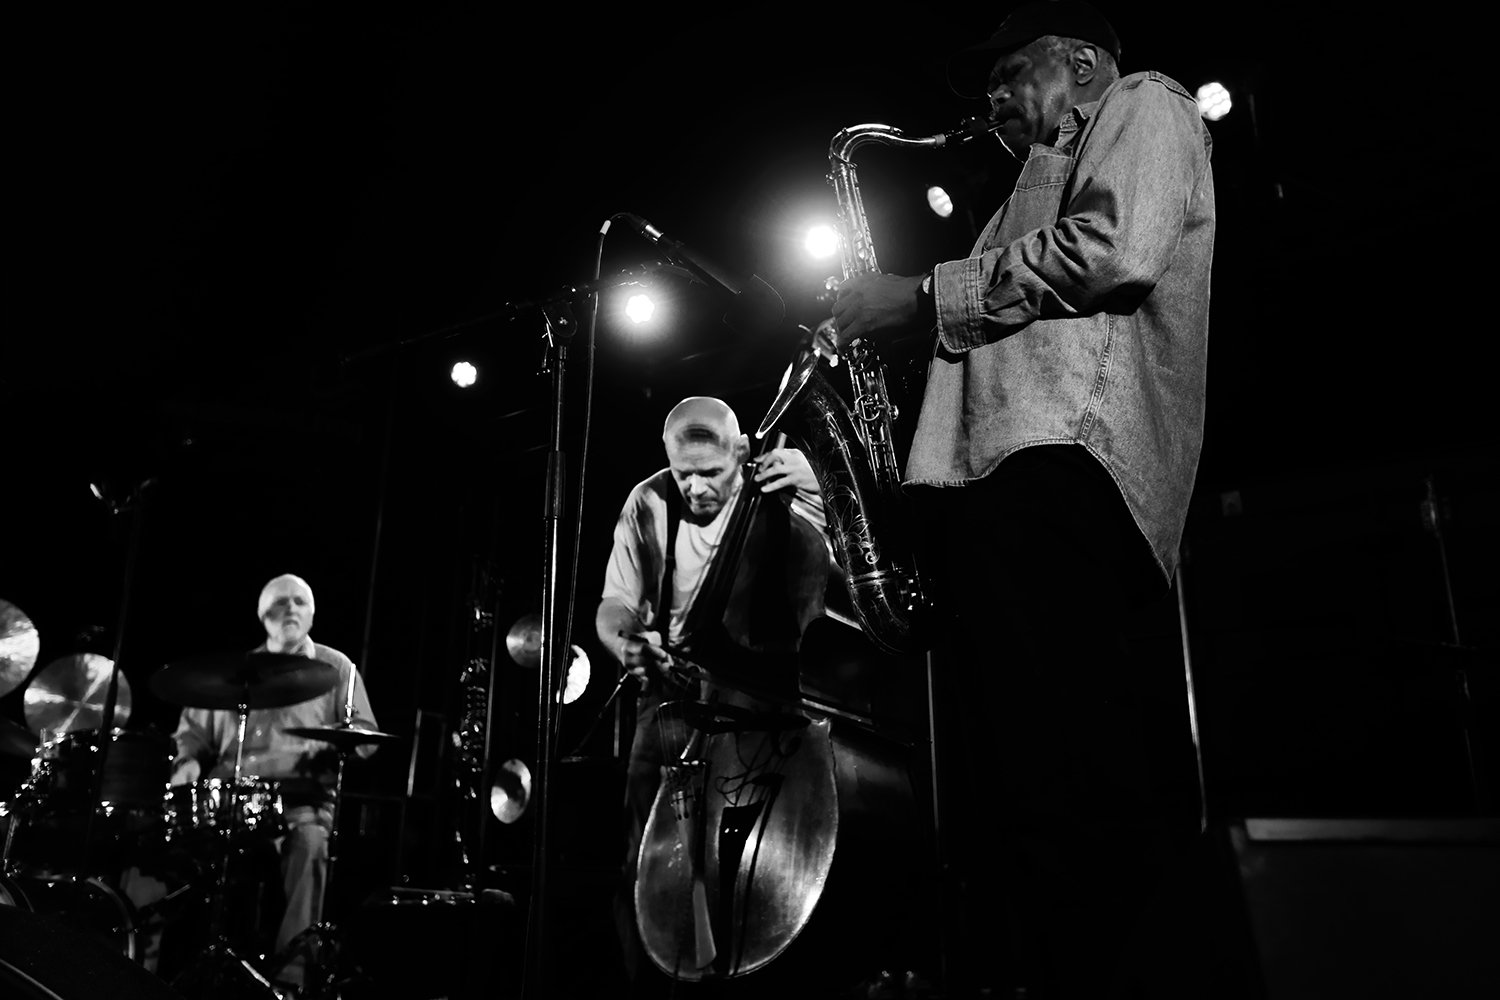 Joe Mcphee & Klaus Kugel & Peter Jacquemyn by Laurent Orseau - Kanal - Centre Pompidou with Les Ateliers Claus - Brussels, Belgium #2